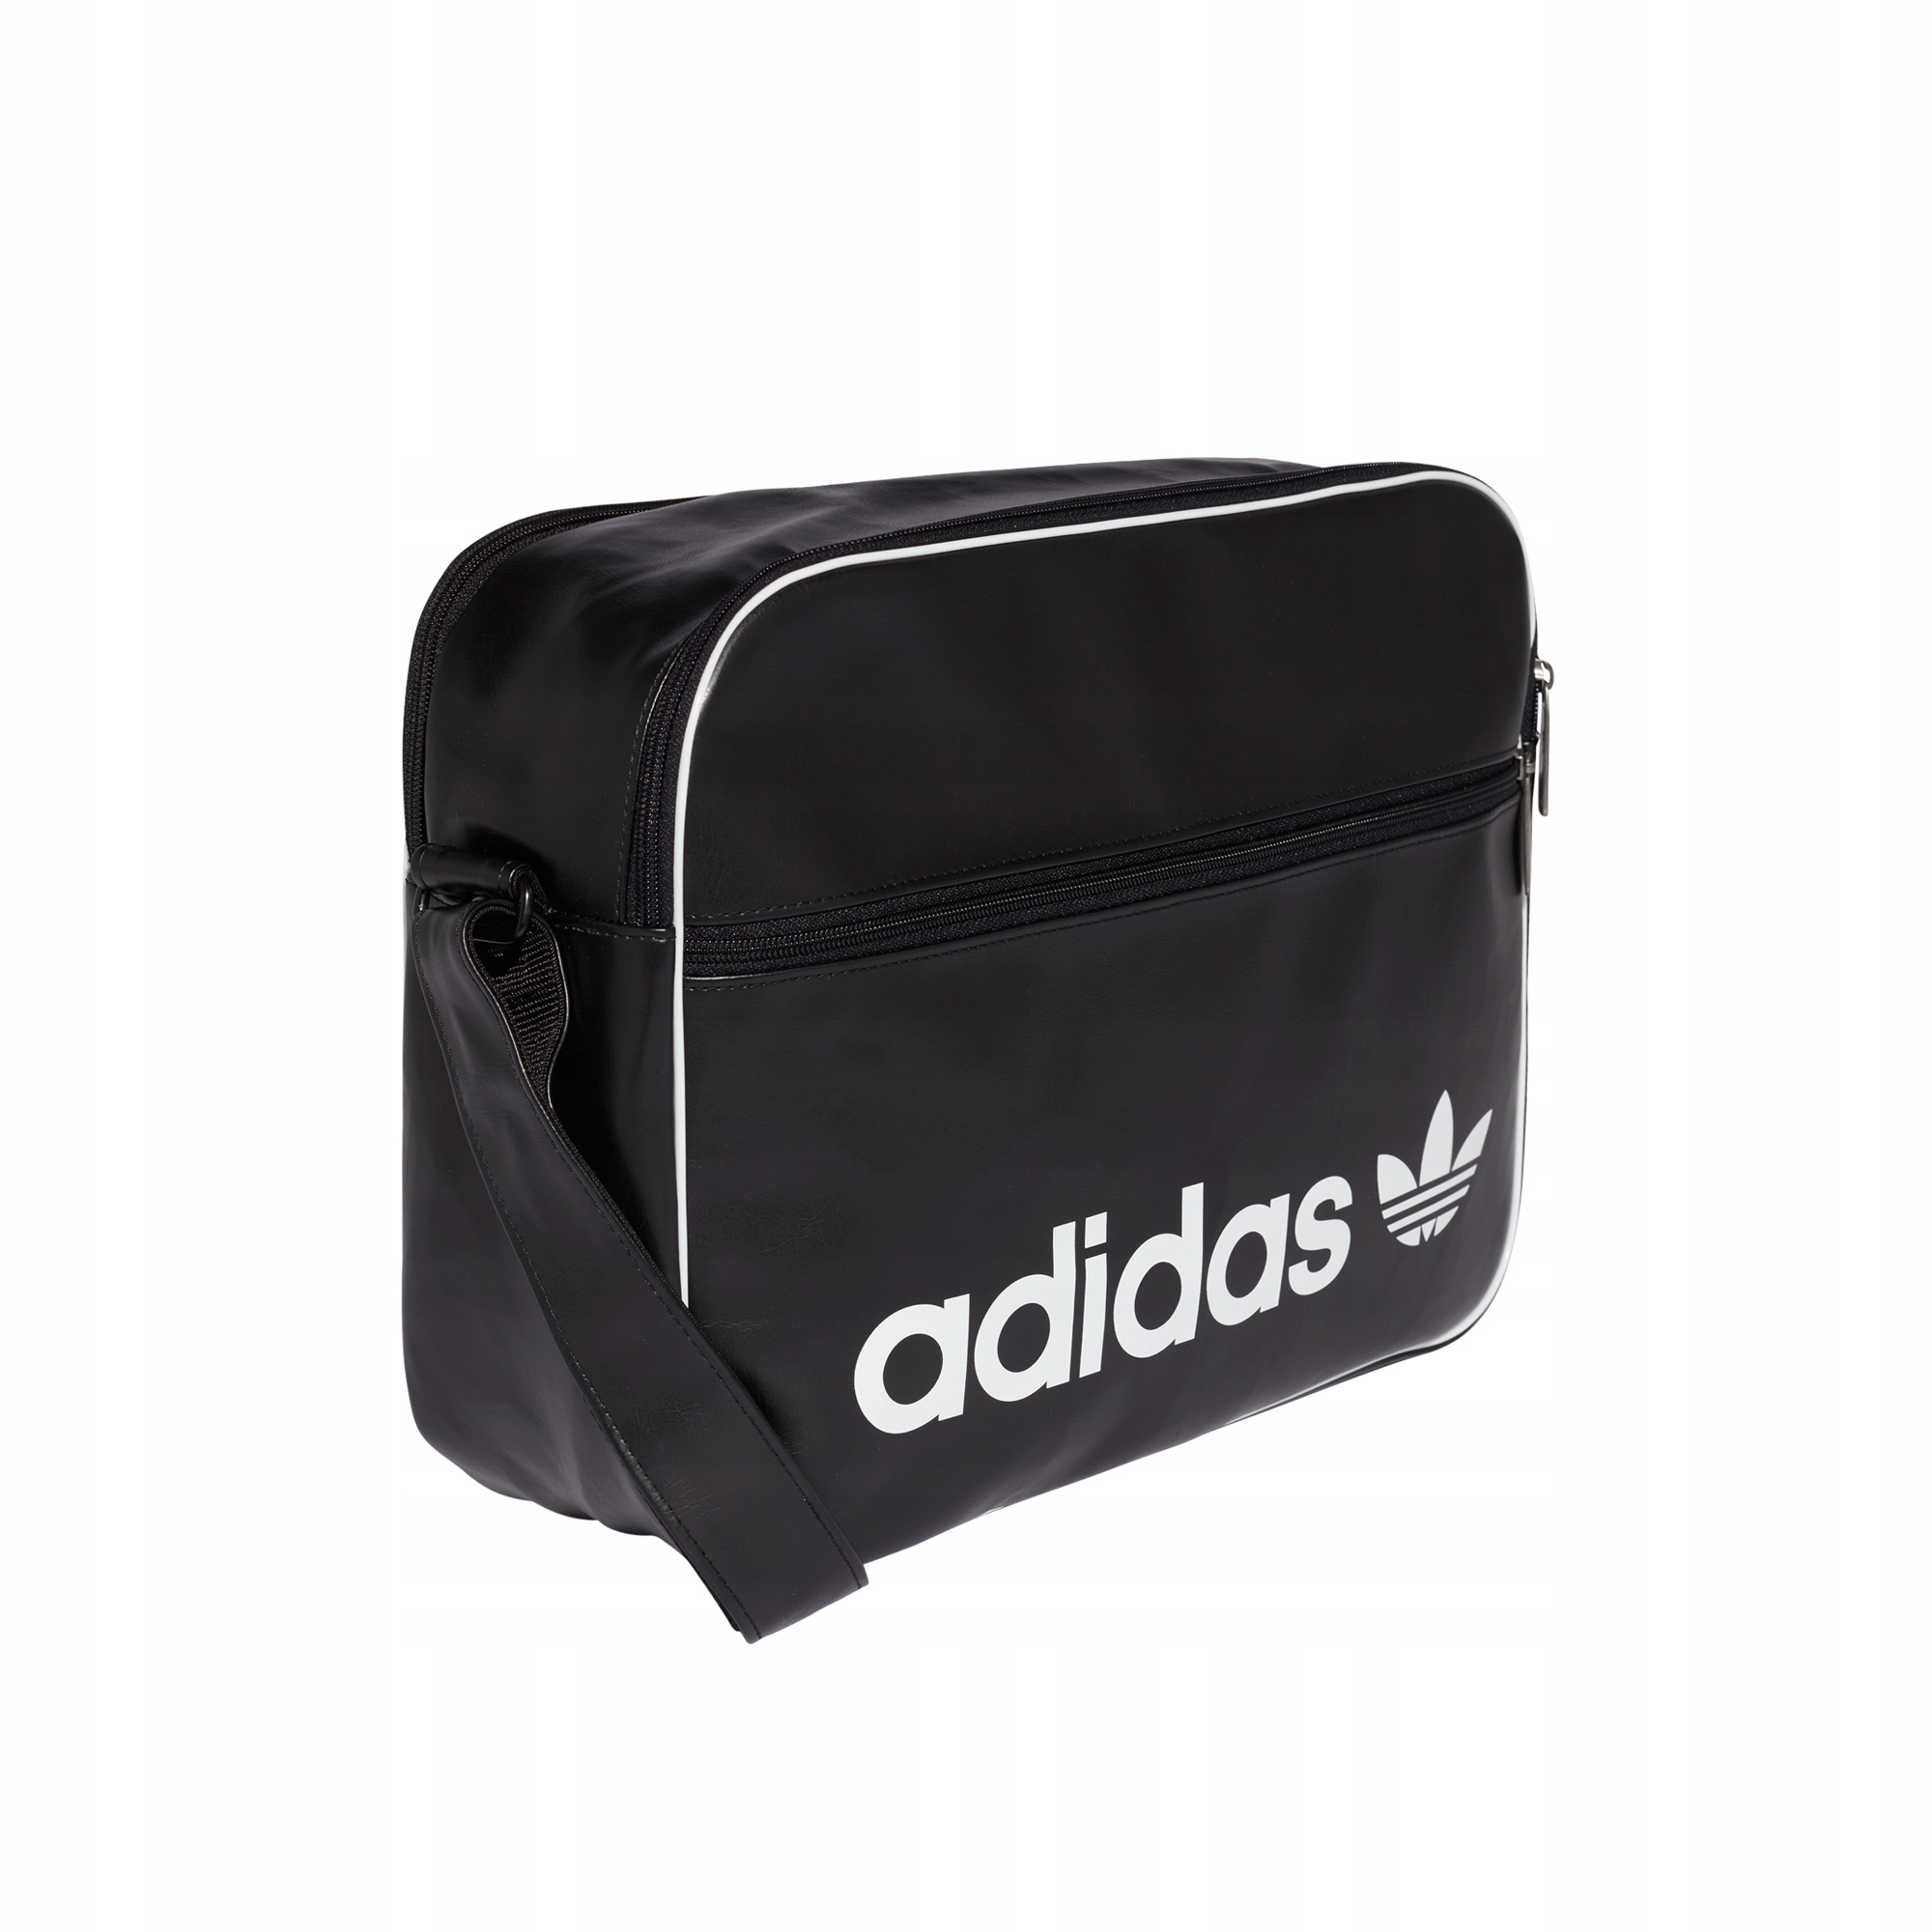 d65ae0ca541d8 Torba adidas Vintage Airliner DH1002 - 7646701359 - oficjalne ...